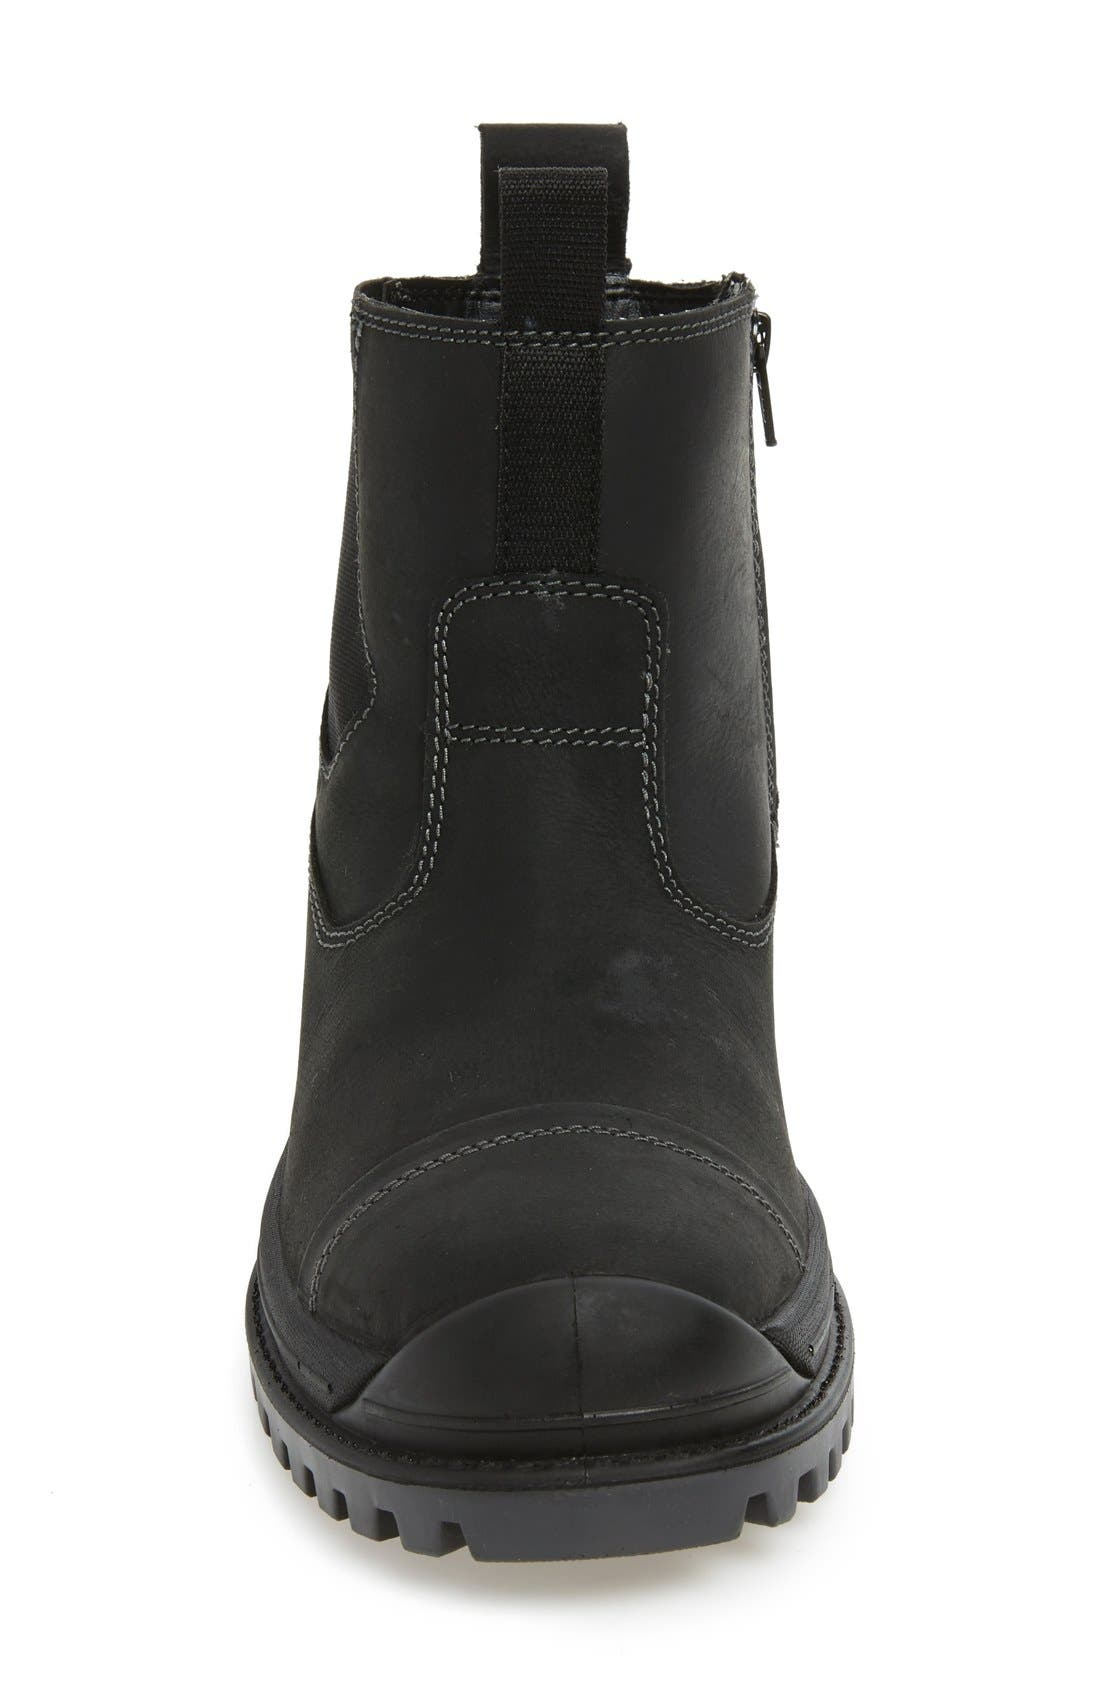 Griffon Snow Waterproof Boot,                             Alternate thumbnail 3, color,                             BLACK LEATHER